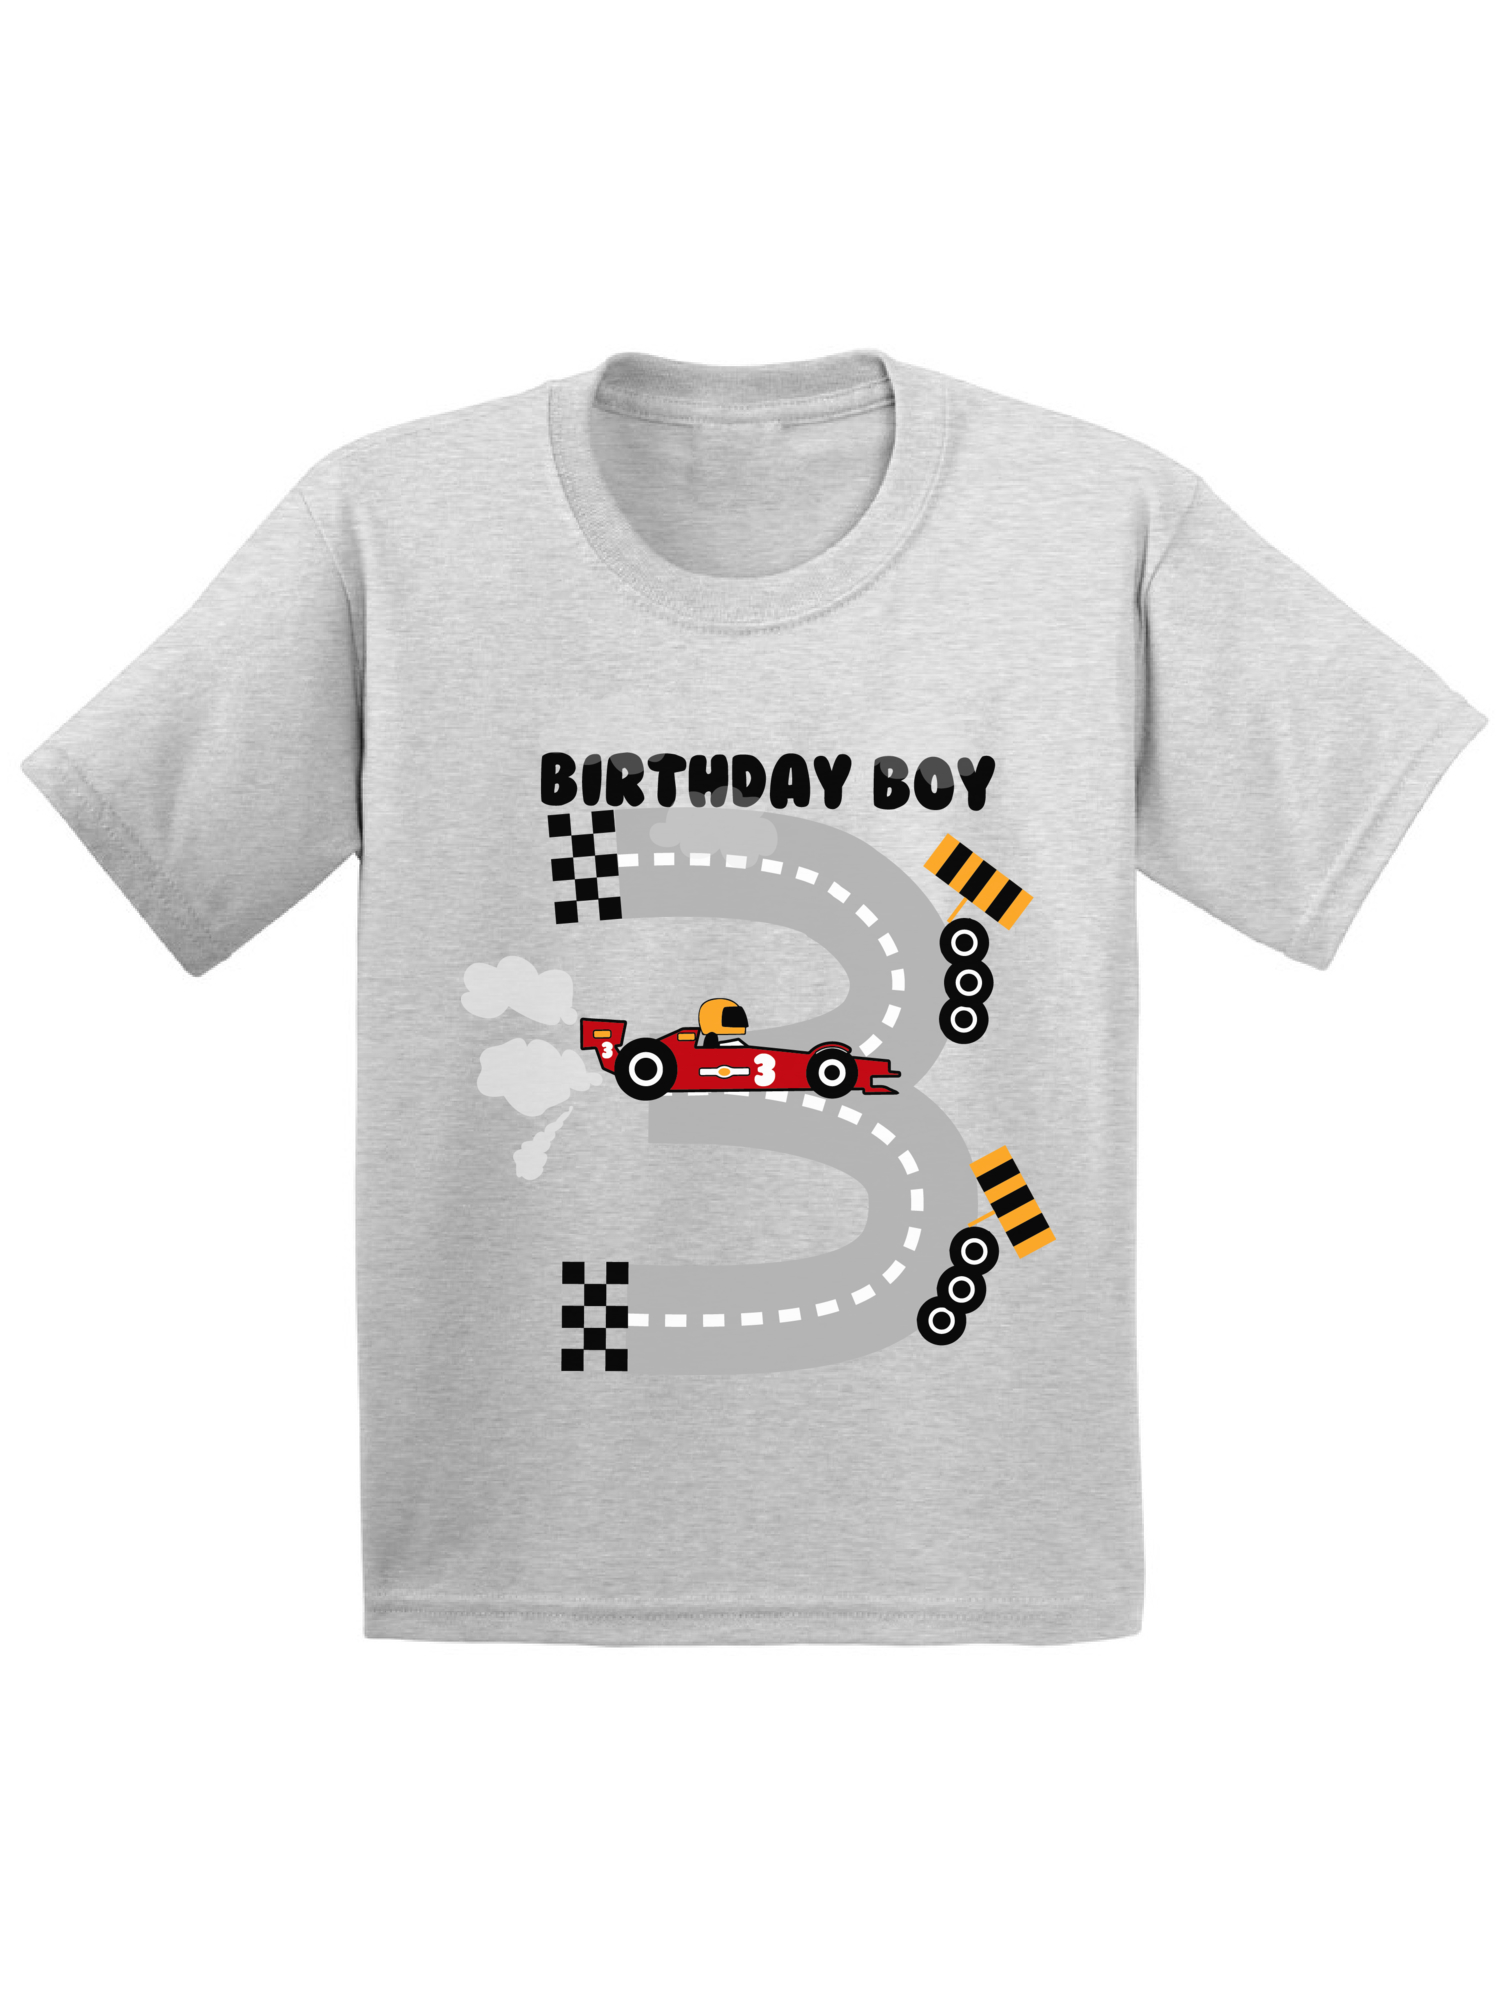 Awkward Styles Awkward Styles Birthday Boy Race Car Toddler Shirt Race Car Birthday Party For Toddler Boys Funny Birthday Gifts For 3 Year Old 3rd Birthday T Shirt Third Birthday Outfit